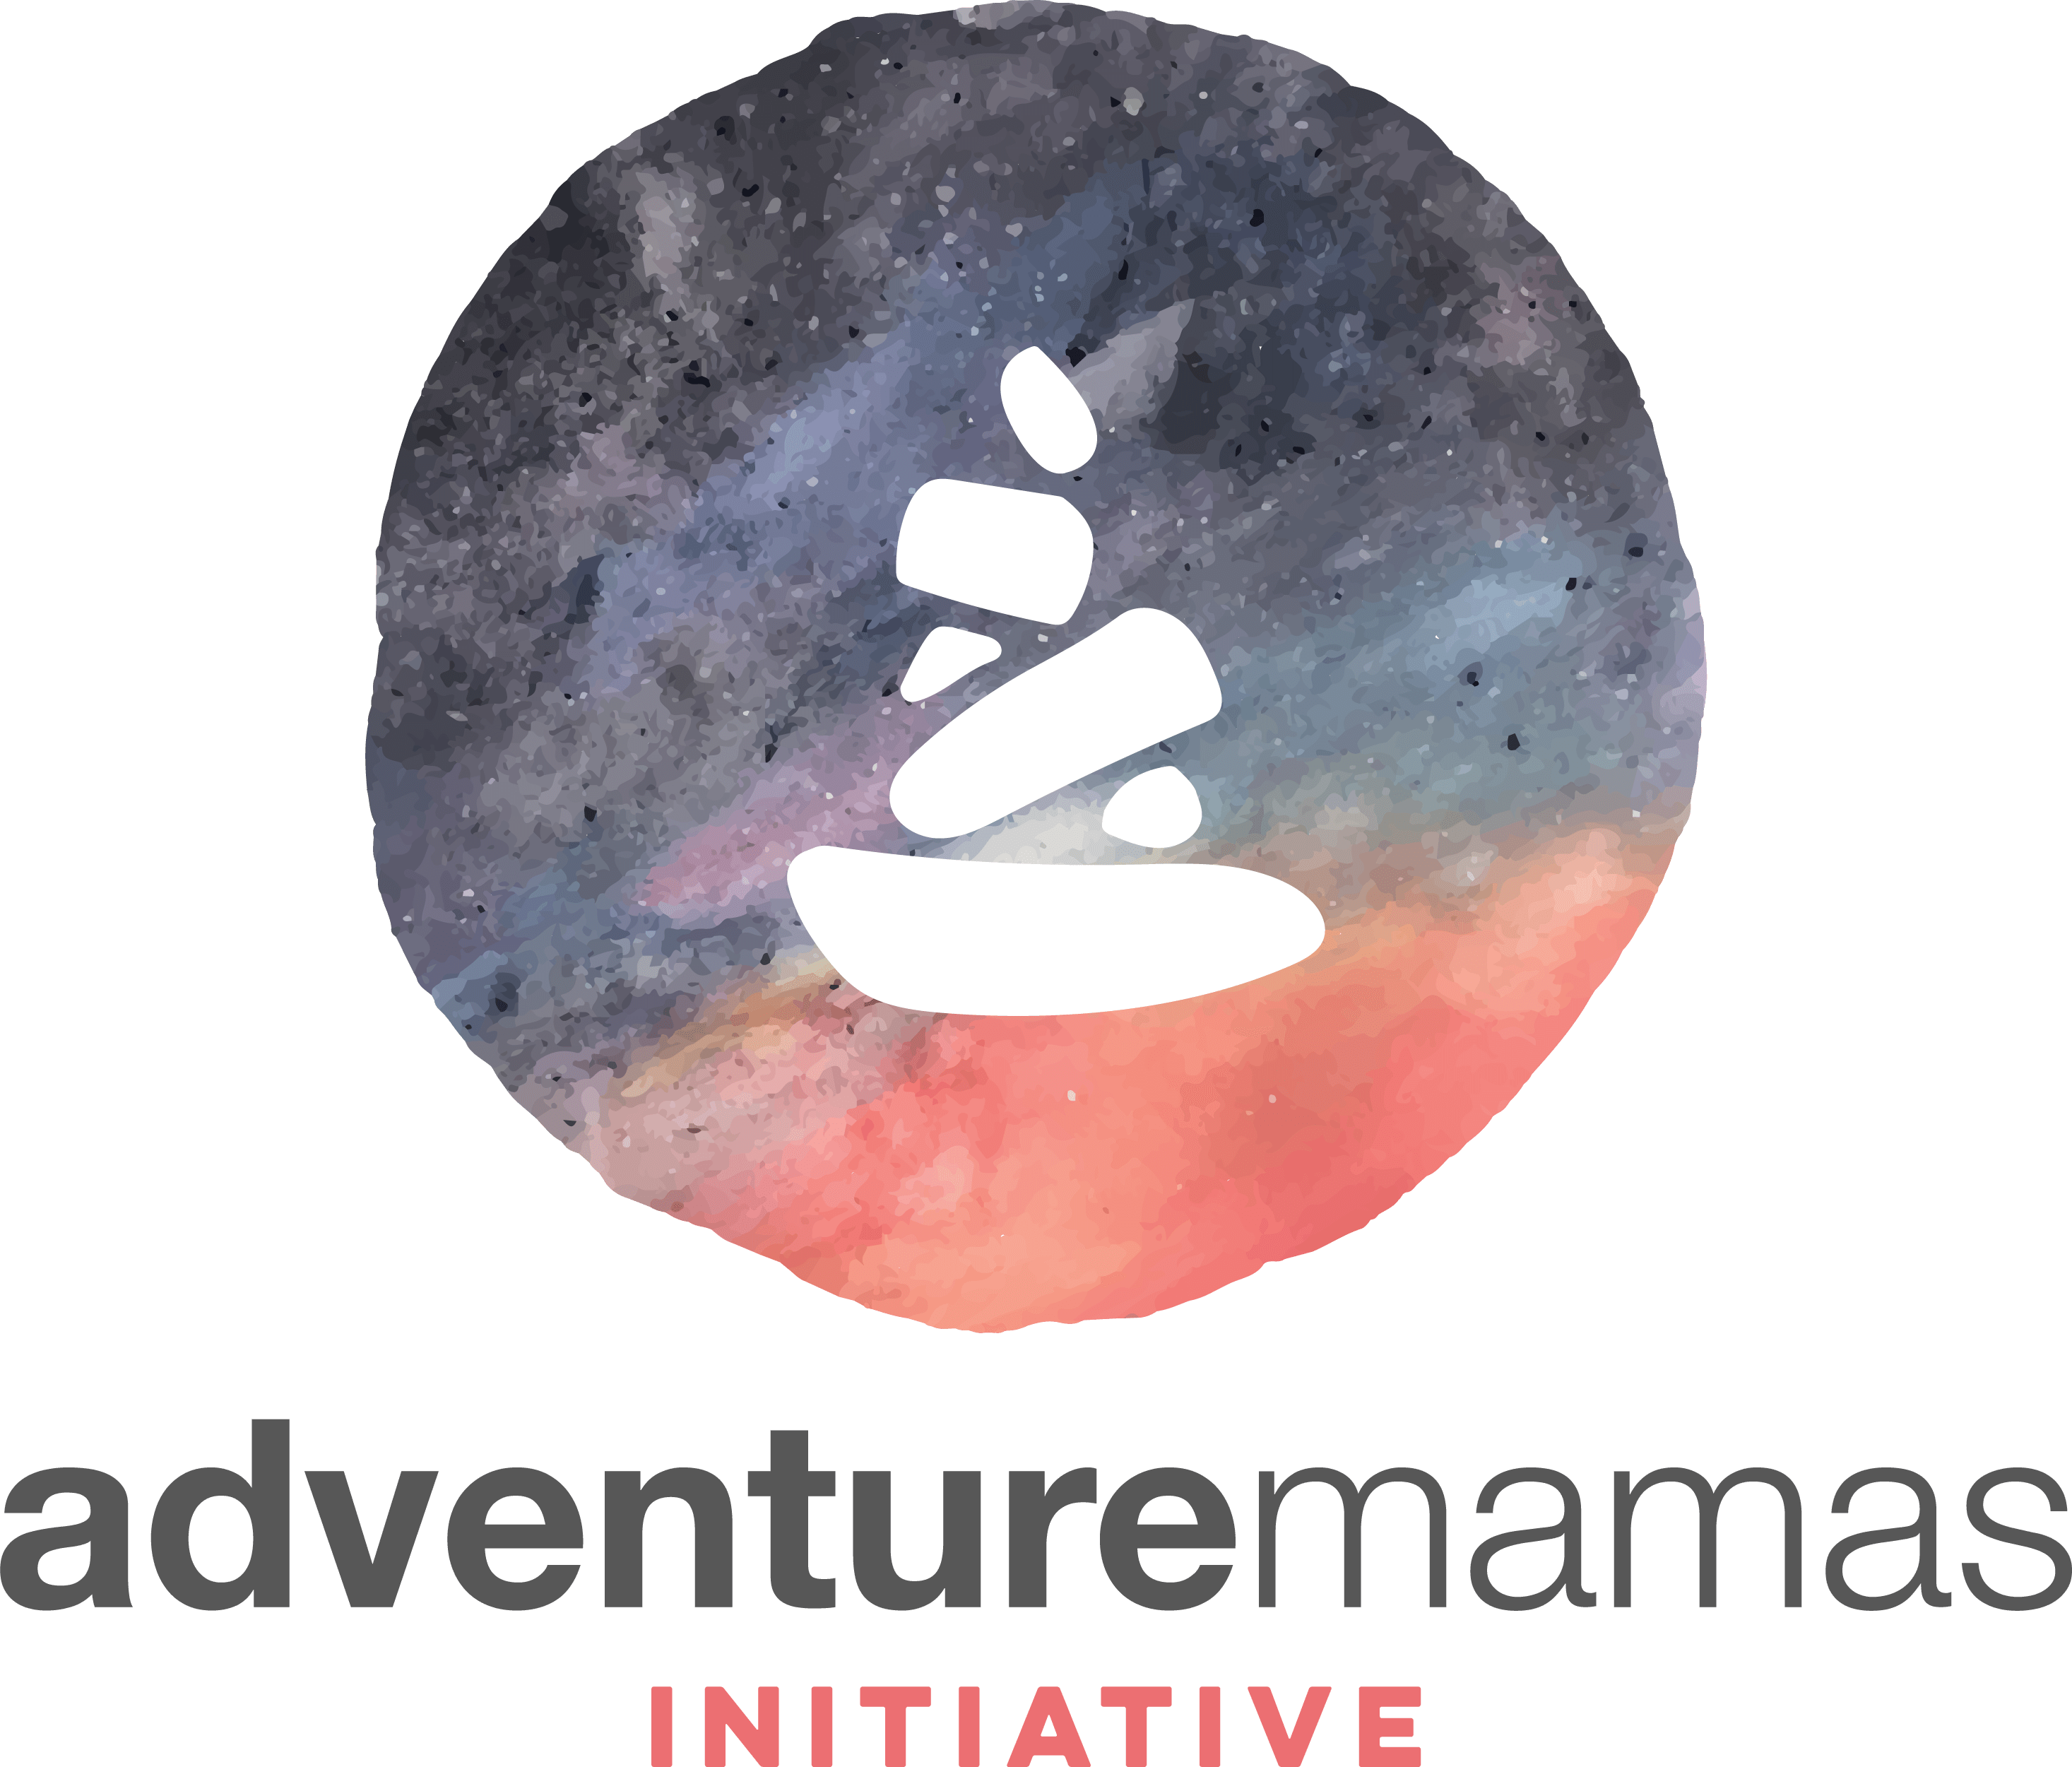 adventure mamas ambassadors, robyn Robledo, adventure travel family, blog